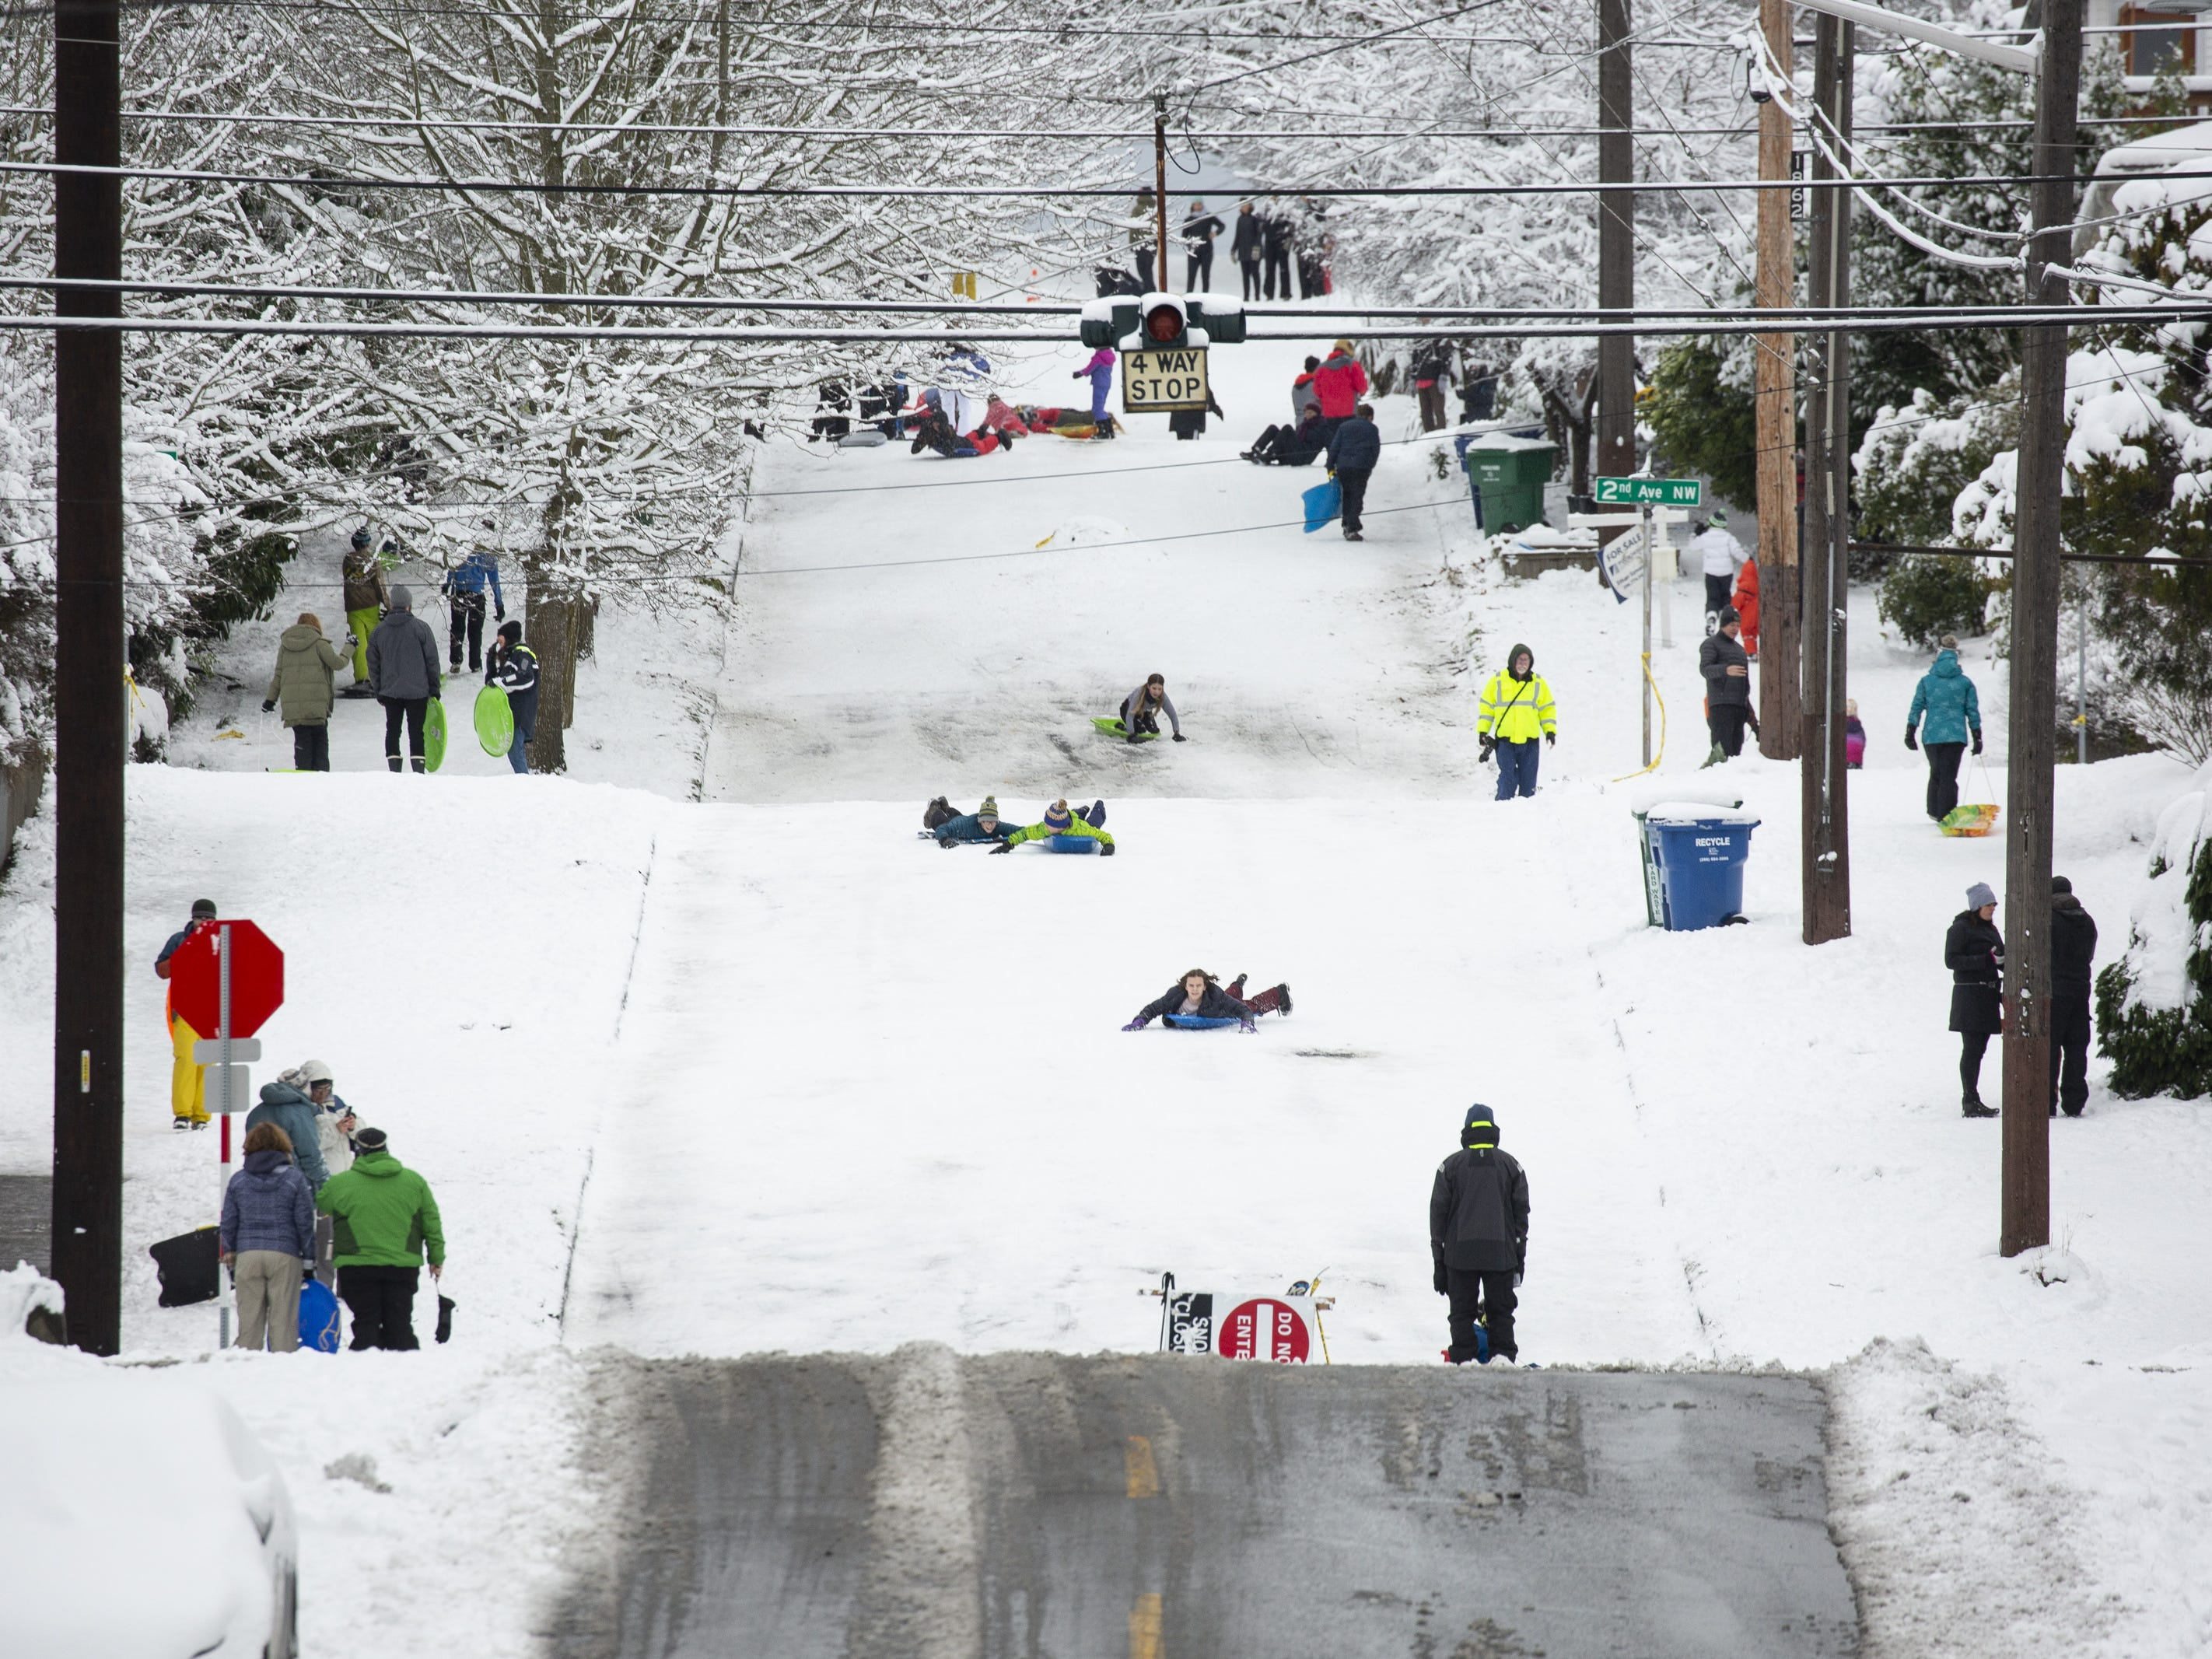 People play on a hill in the Phinney Ridge neighborhood after a large storm blanketed the city with snow on February 9, 2019 in Seattle, Washington.